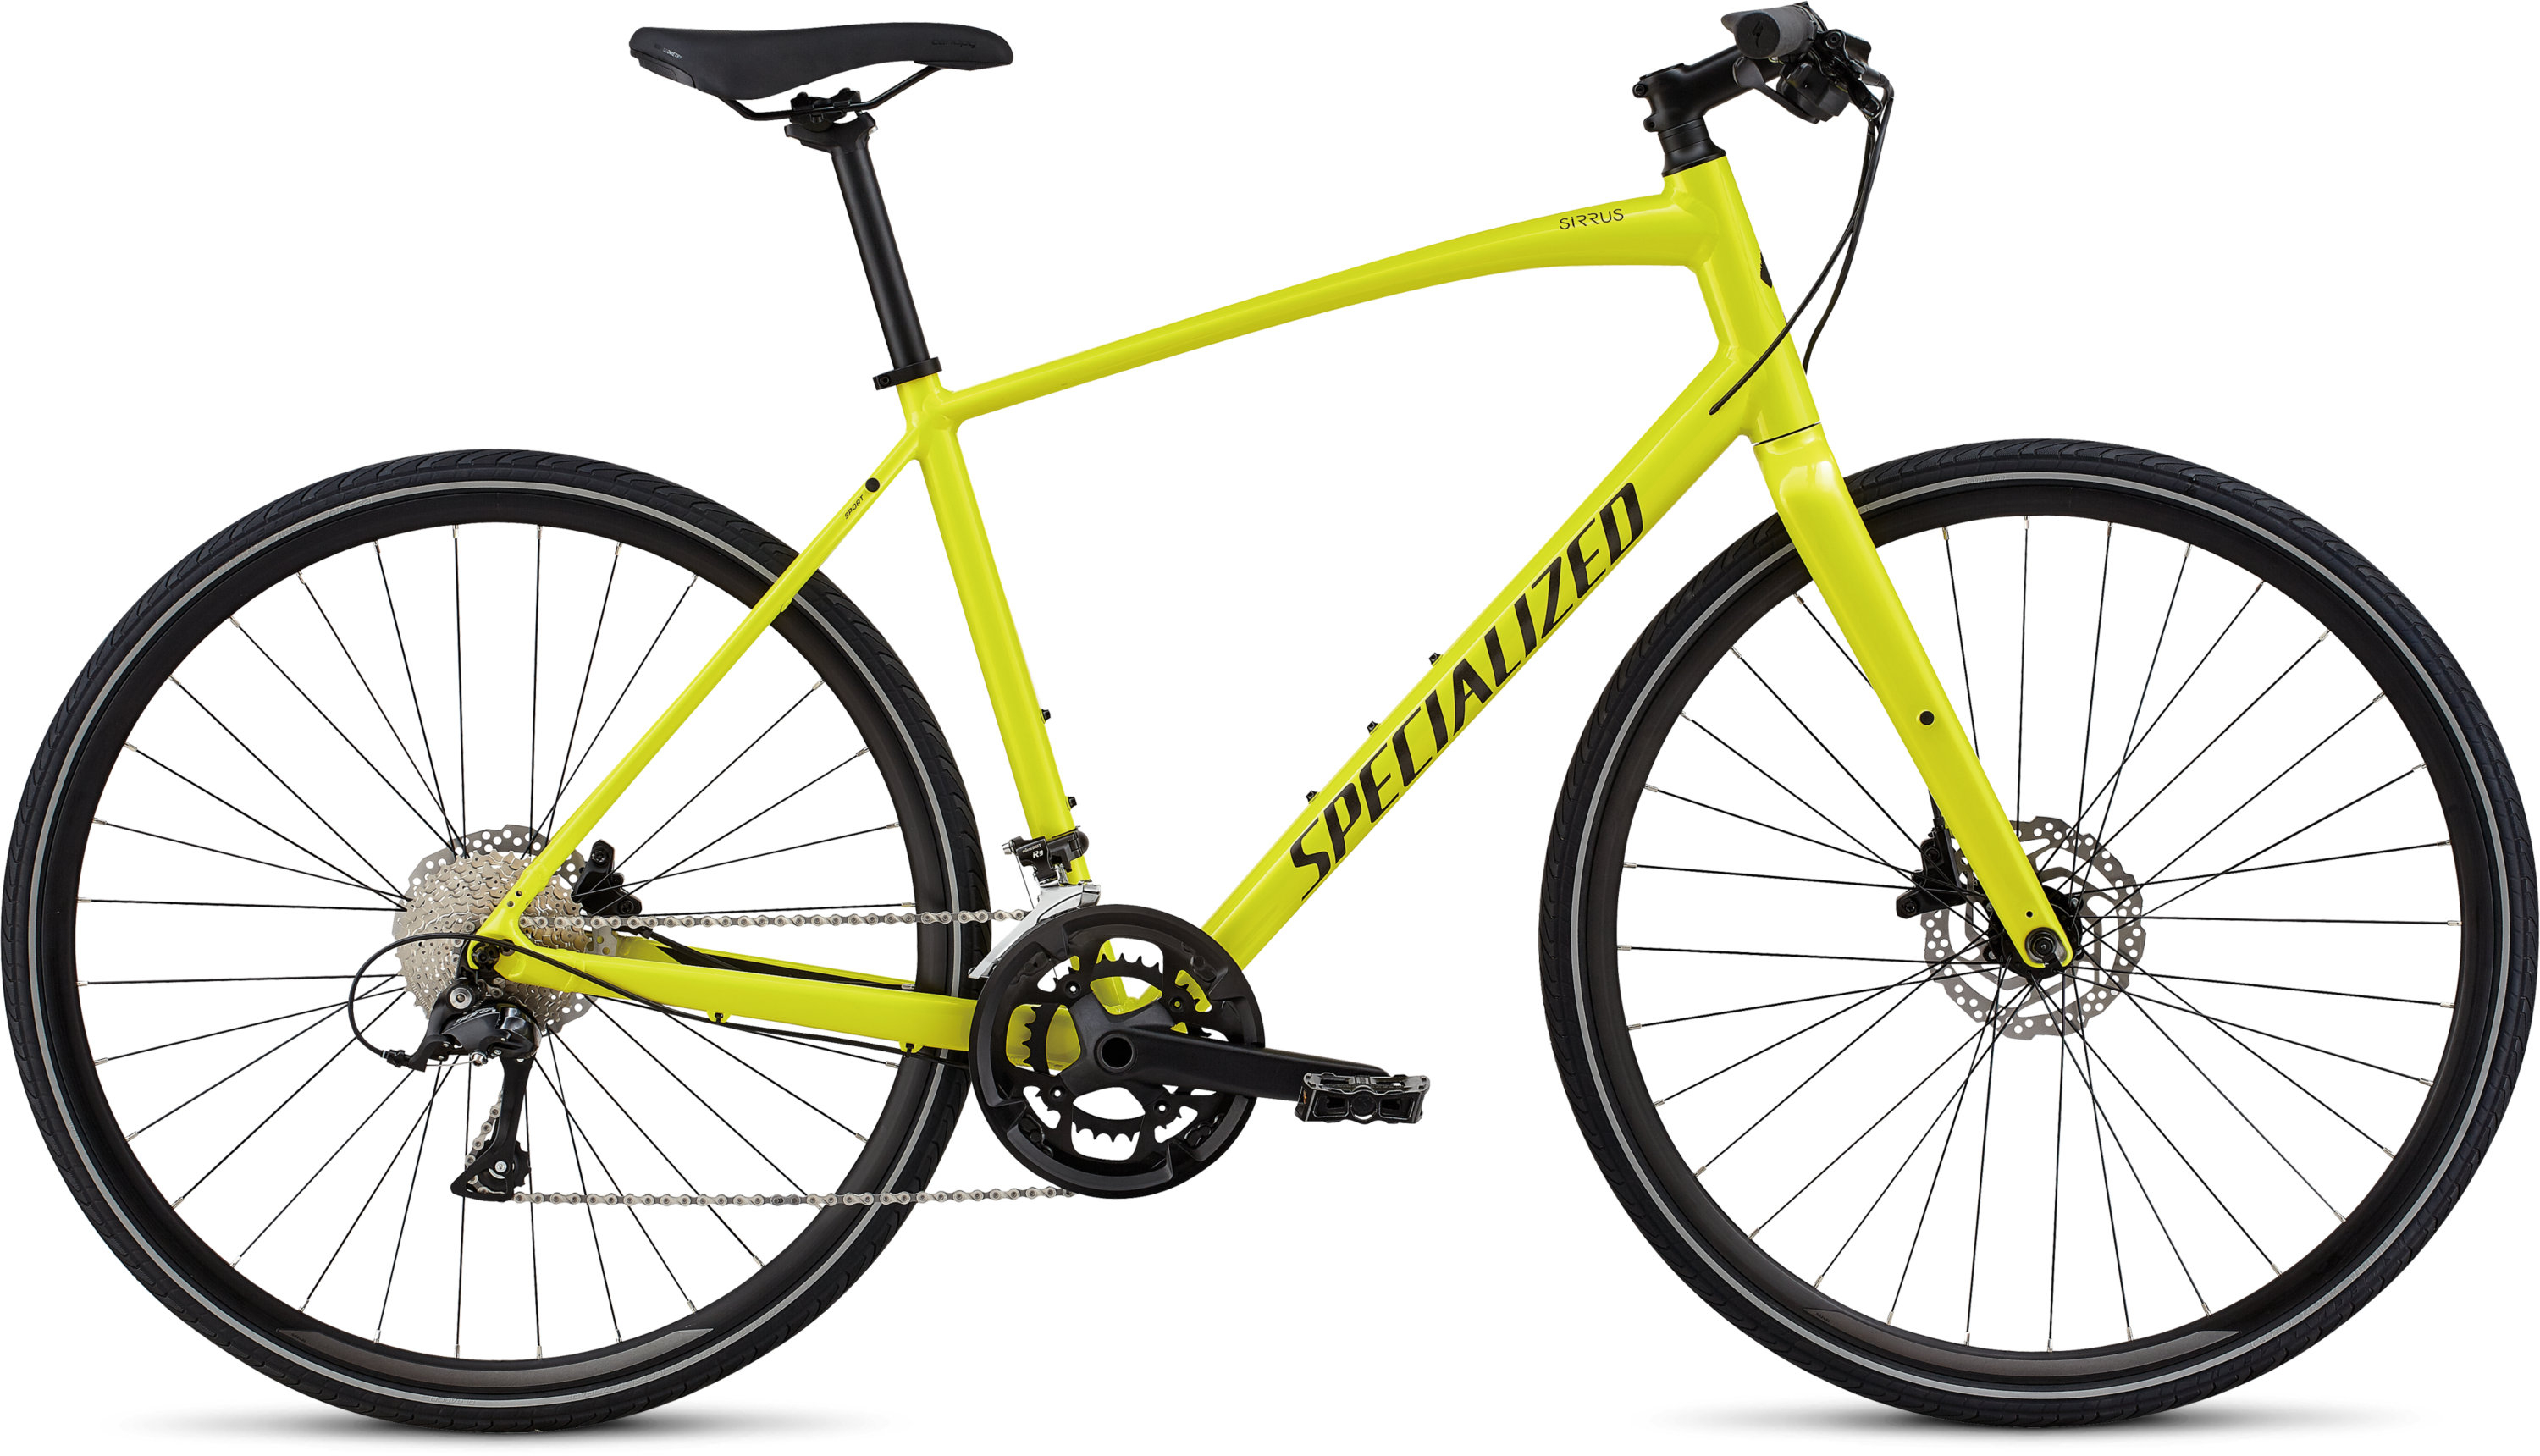 2013 specialized sirius elite weight loss